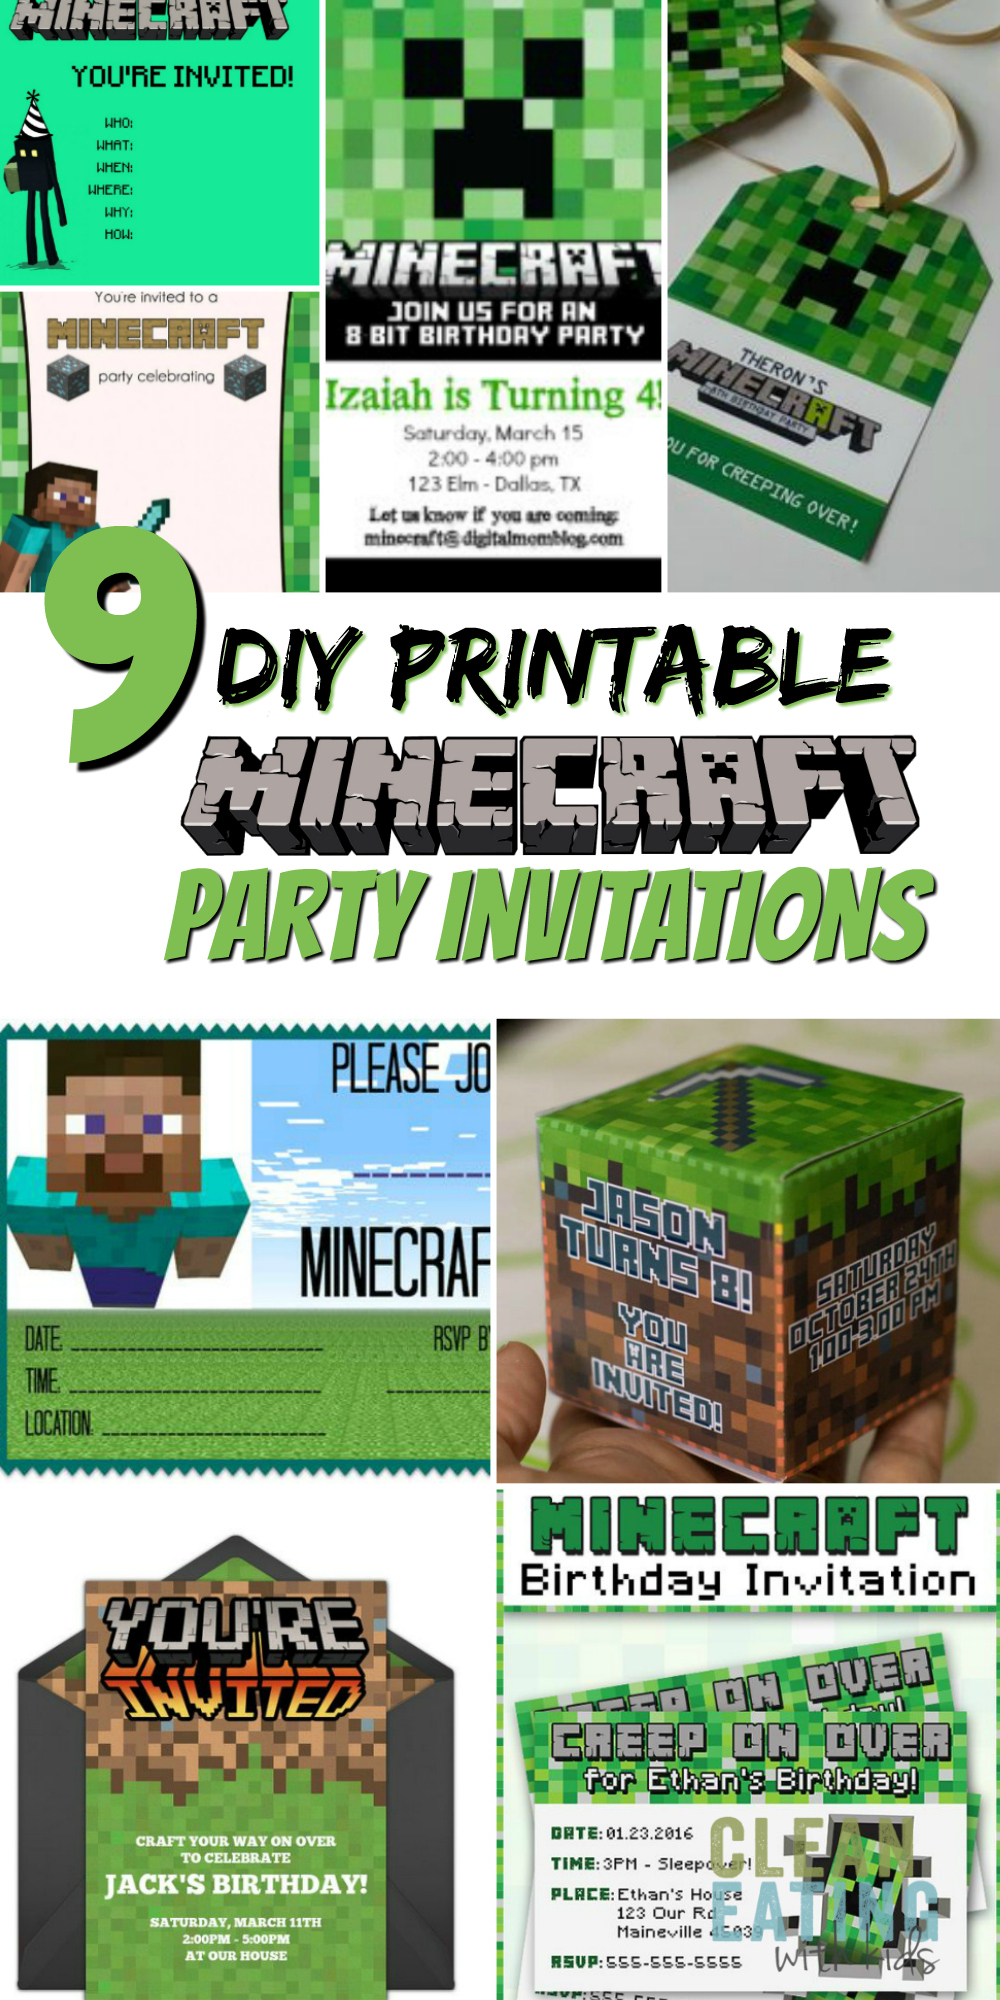 Free Diy Printable Minecraft Birthday Invitation - Clean Intended For Minecraft Birthday Card Template